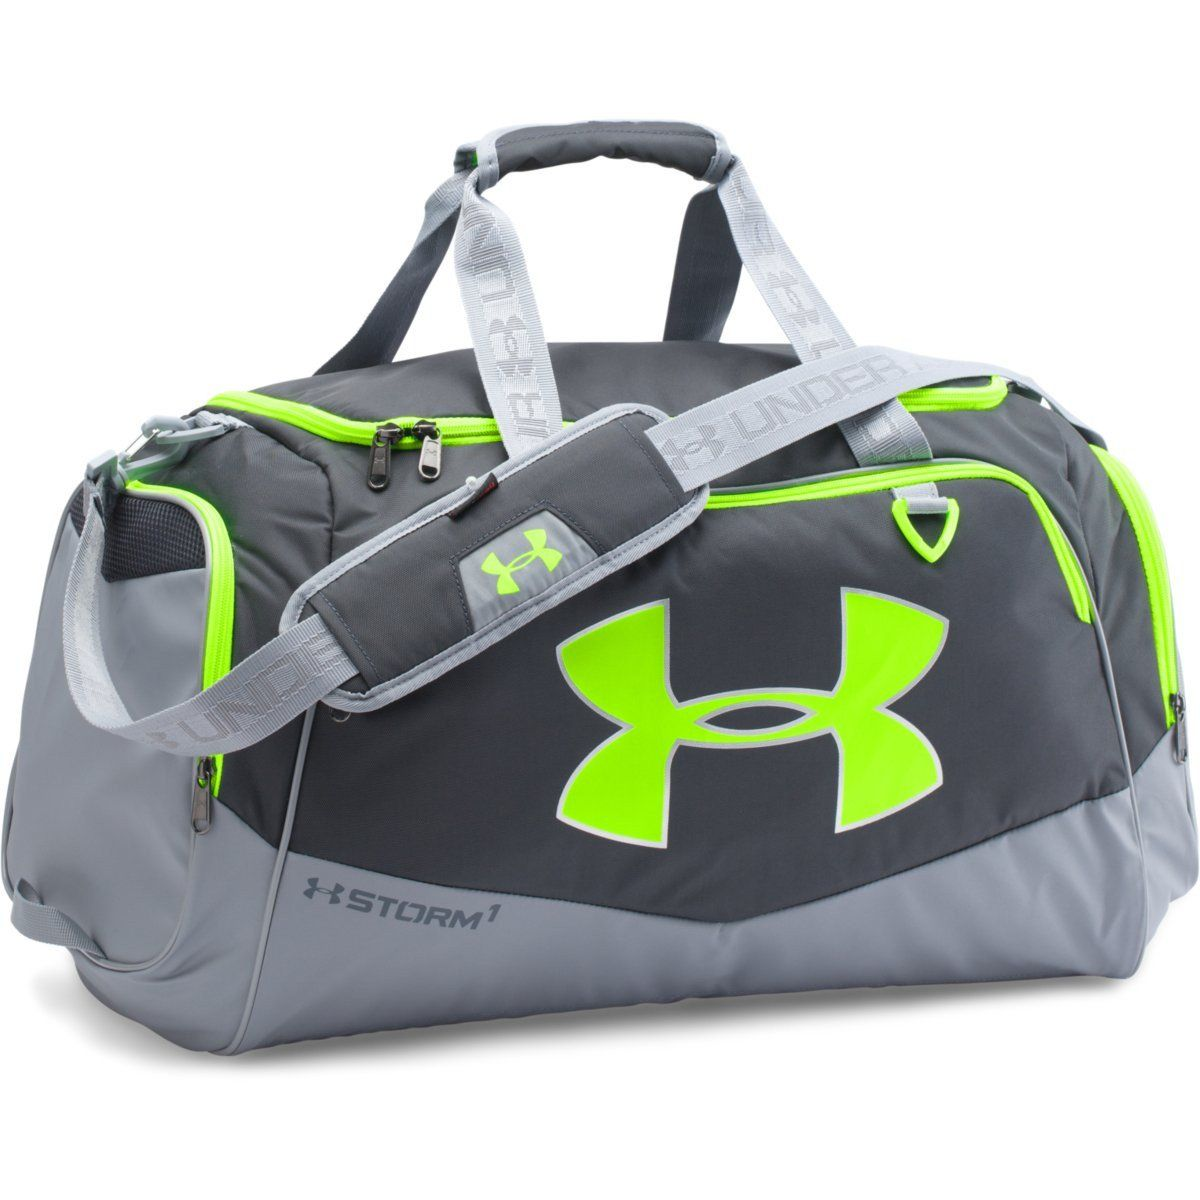 047d3ac823 Under Armour Green Grey UA Undeniable Small Duffel